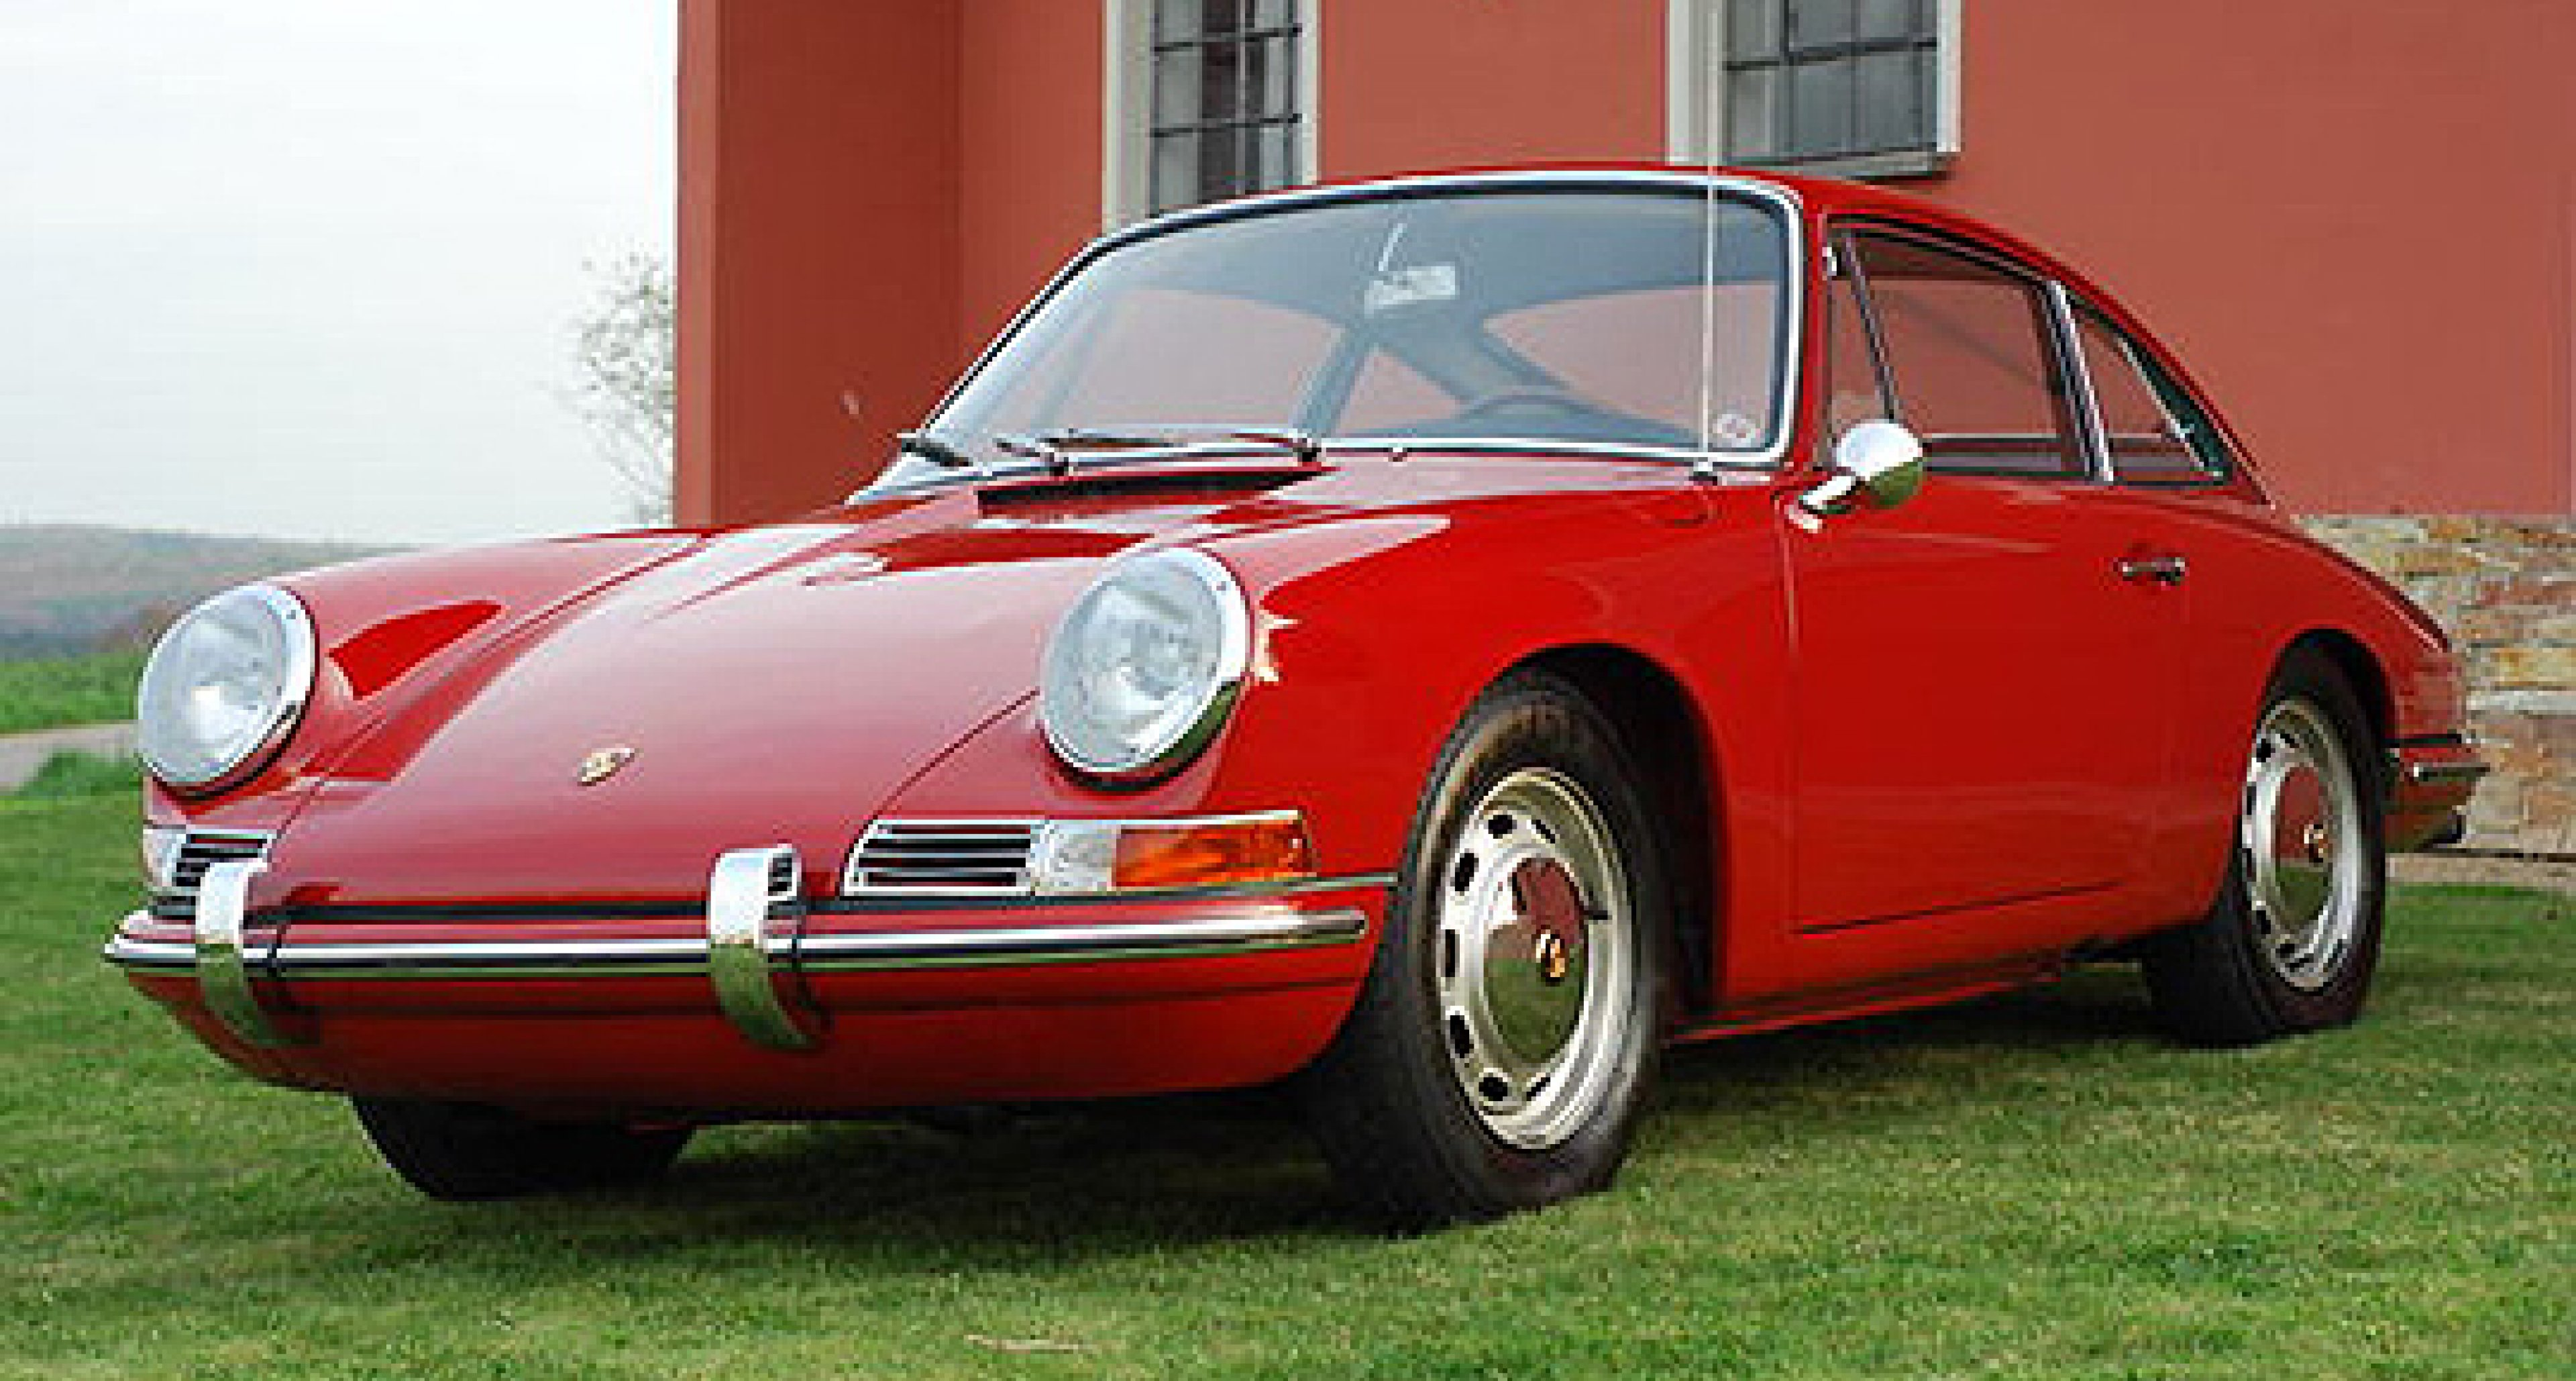 Editor's Choice: Porsche 911 classic with matching numbers